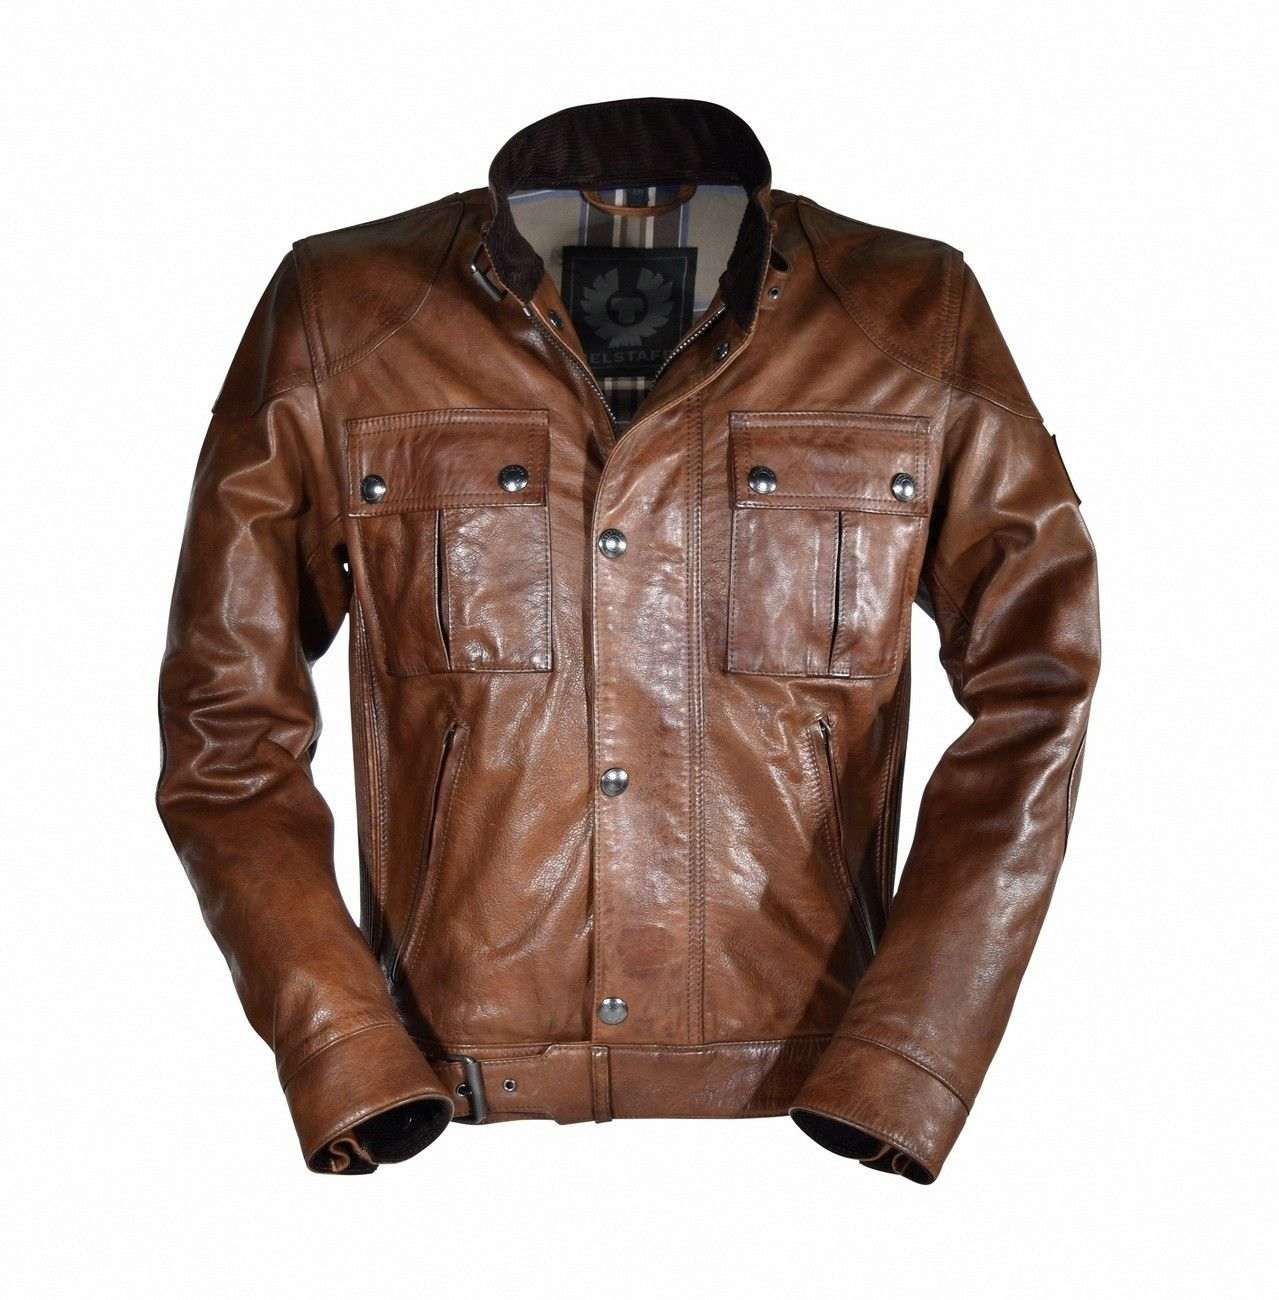 belstaff herren lederjacke gangster 2 0 cognac. Black Bedroom Furniture Sets. Home Design Ideas